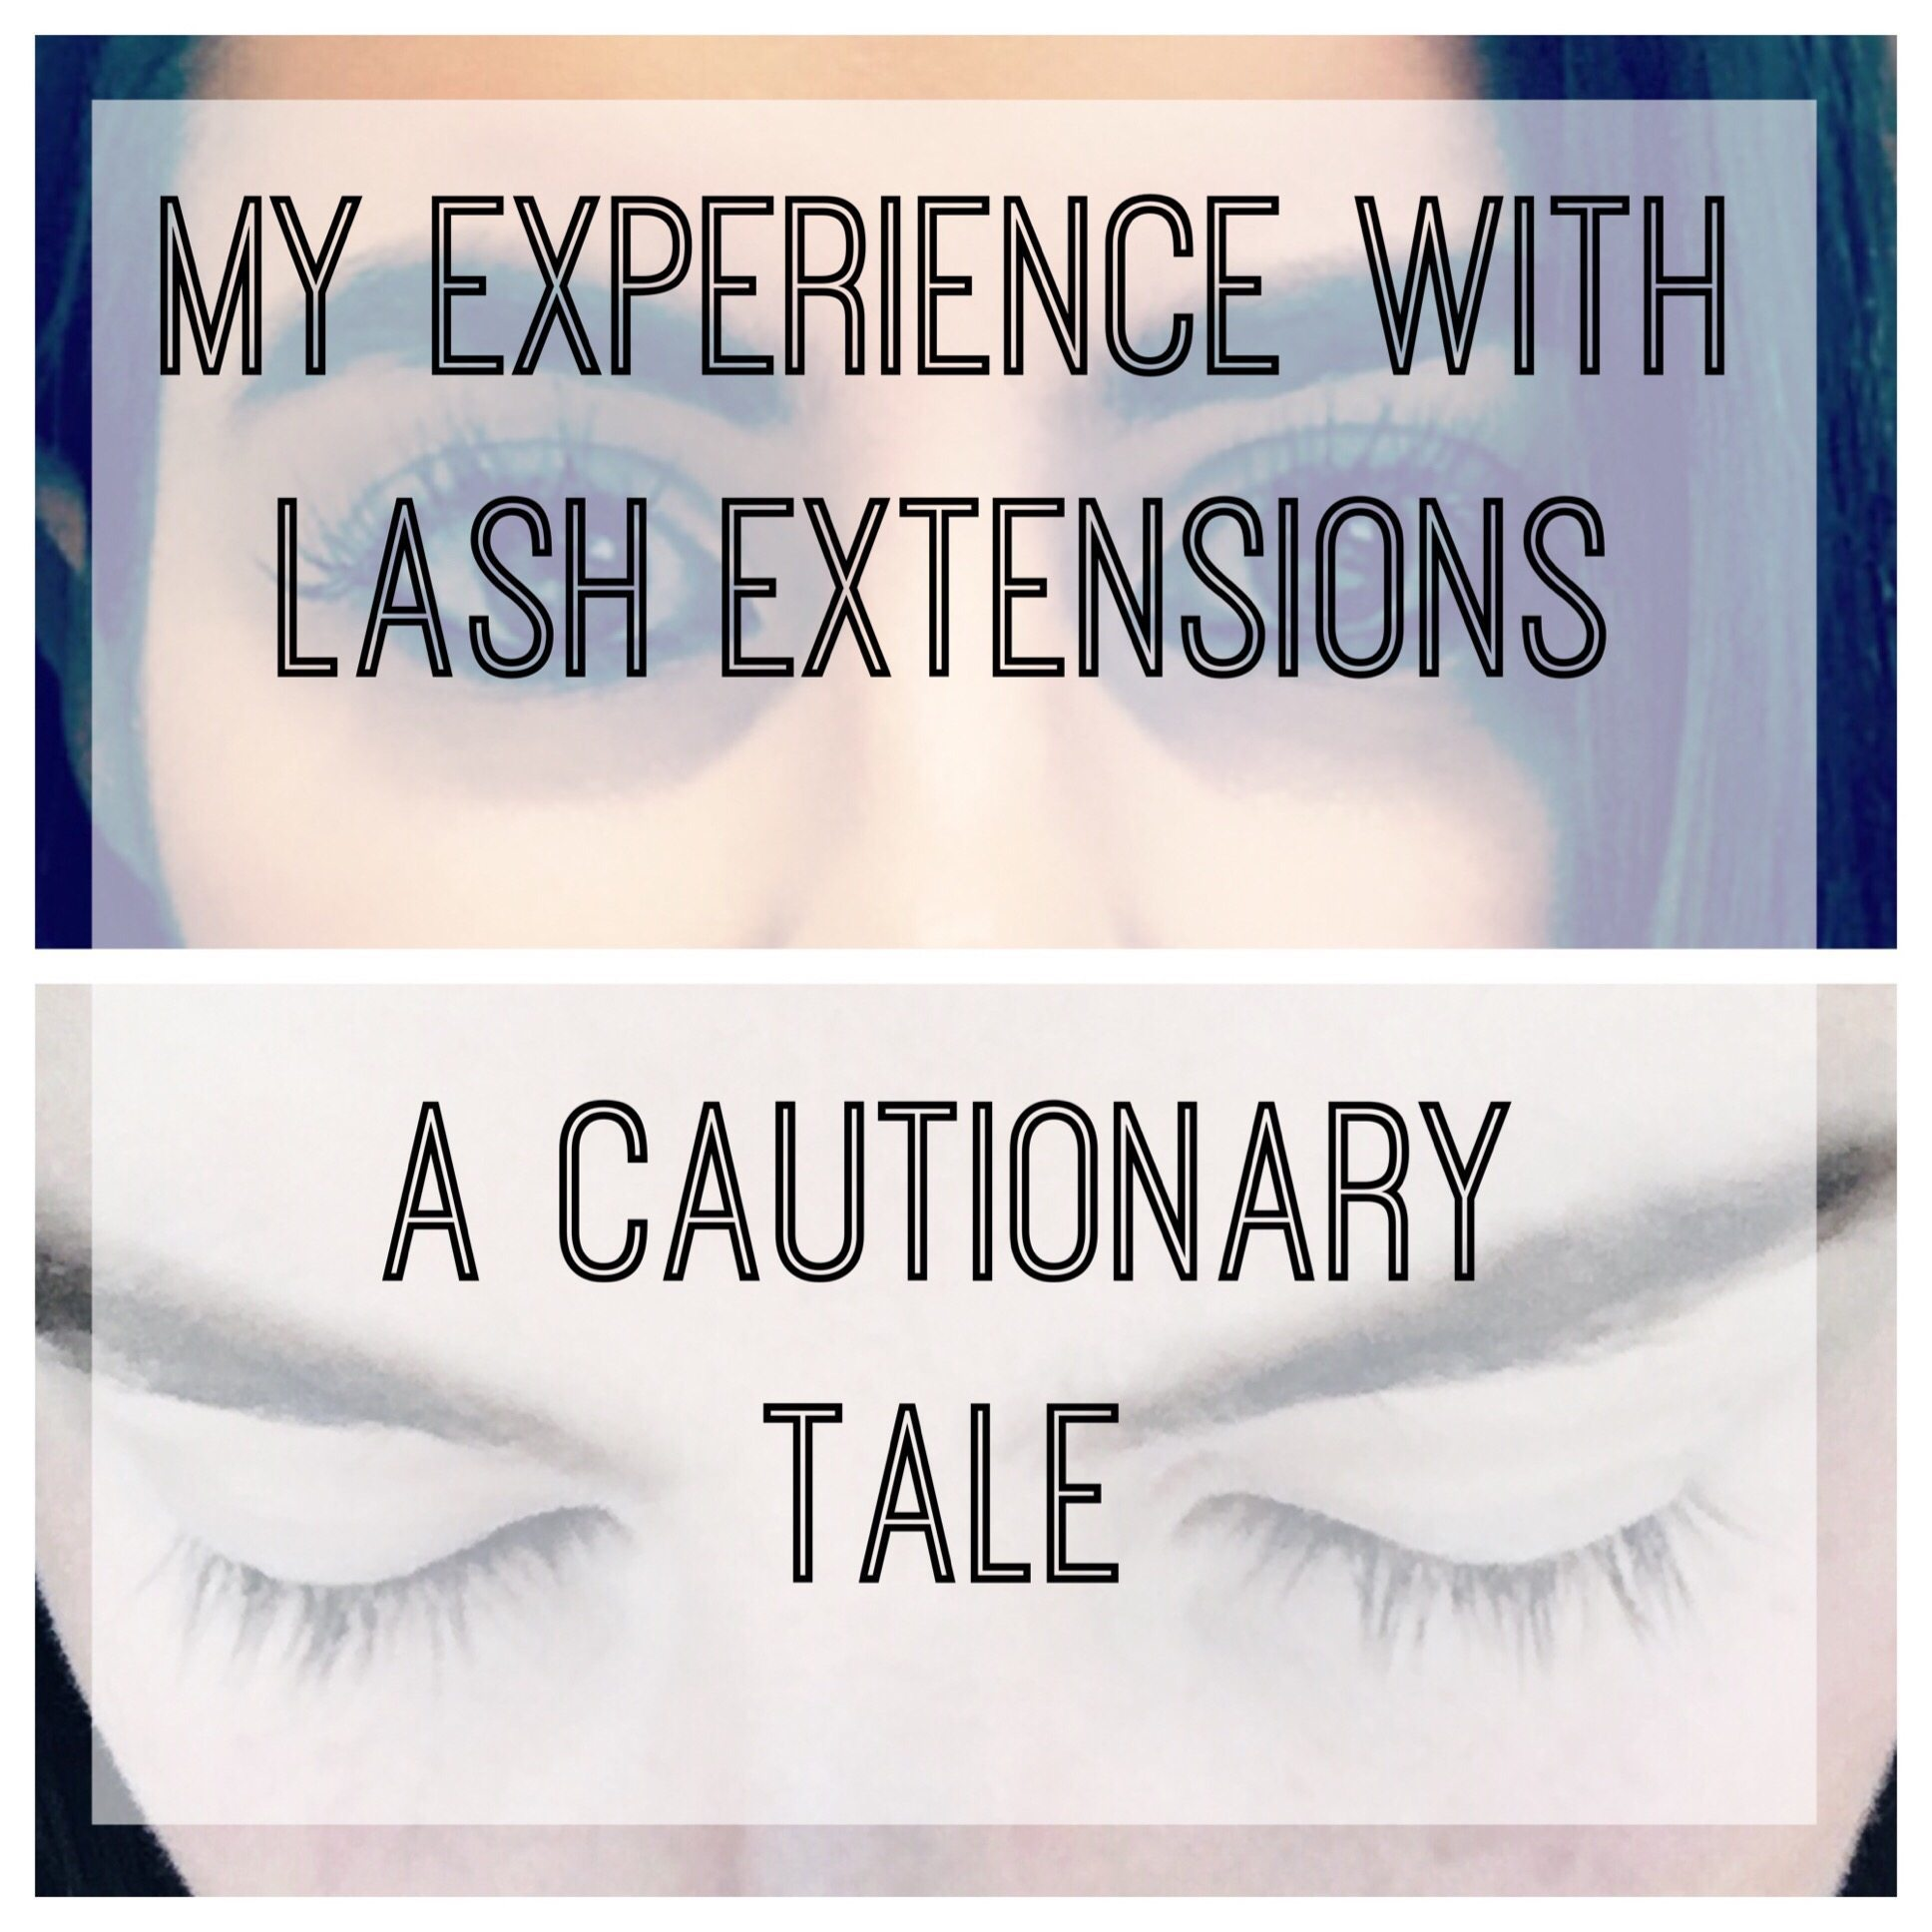 29a69401215 My Experience with Lash Extensions (A Cautionary Tale) - Veronika's ...